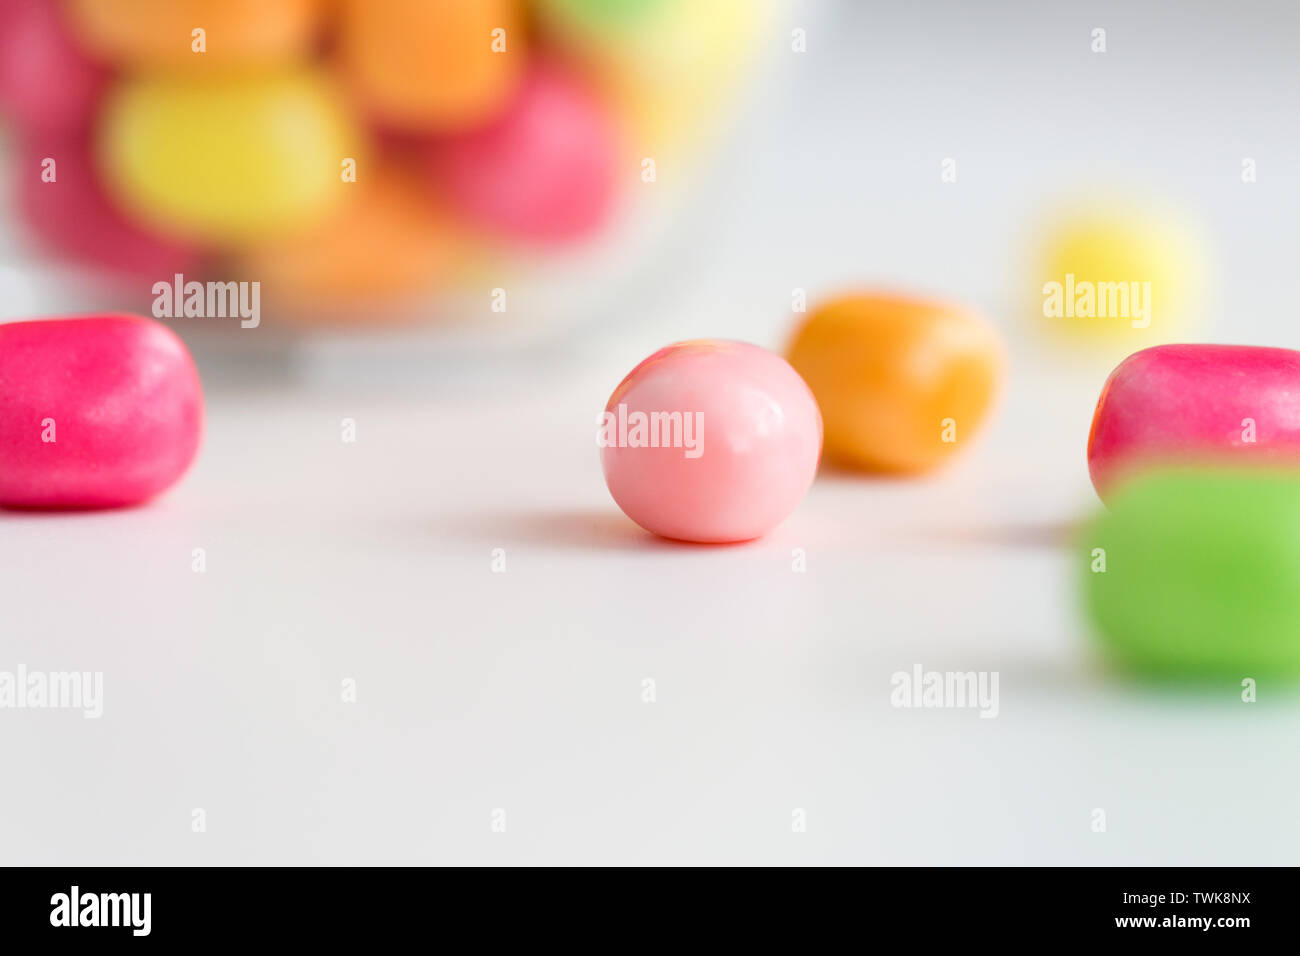 close up of candy drops over white background - Stock Image